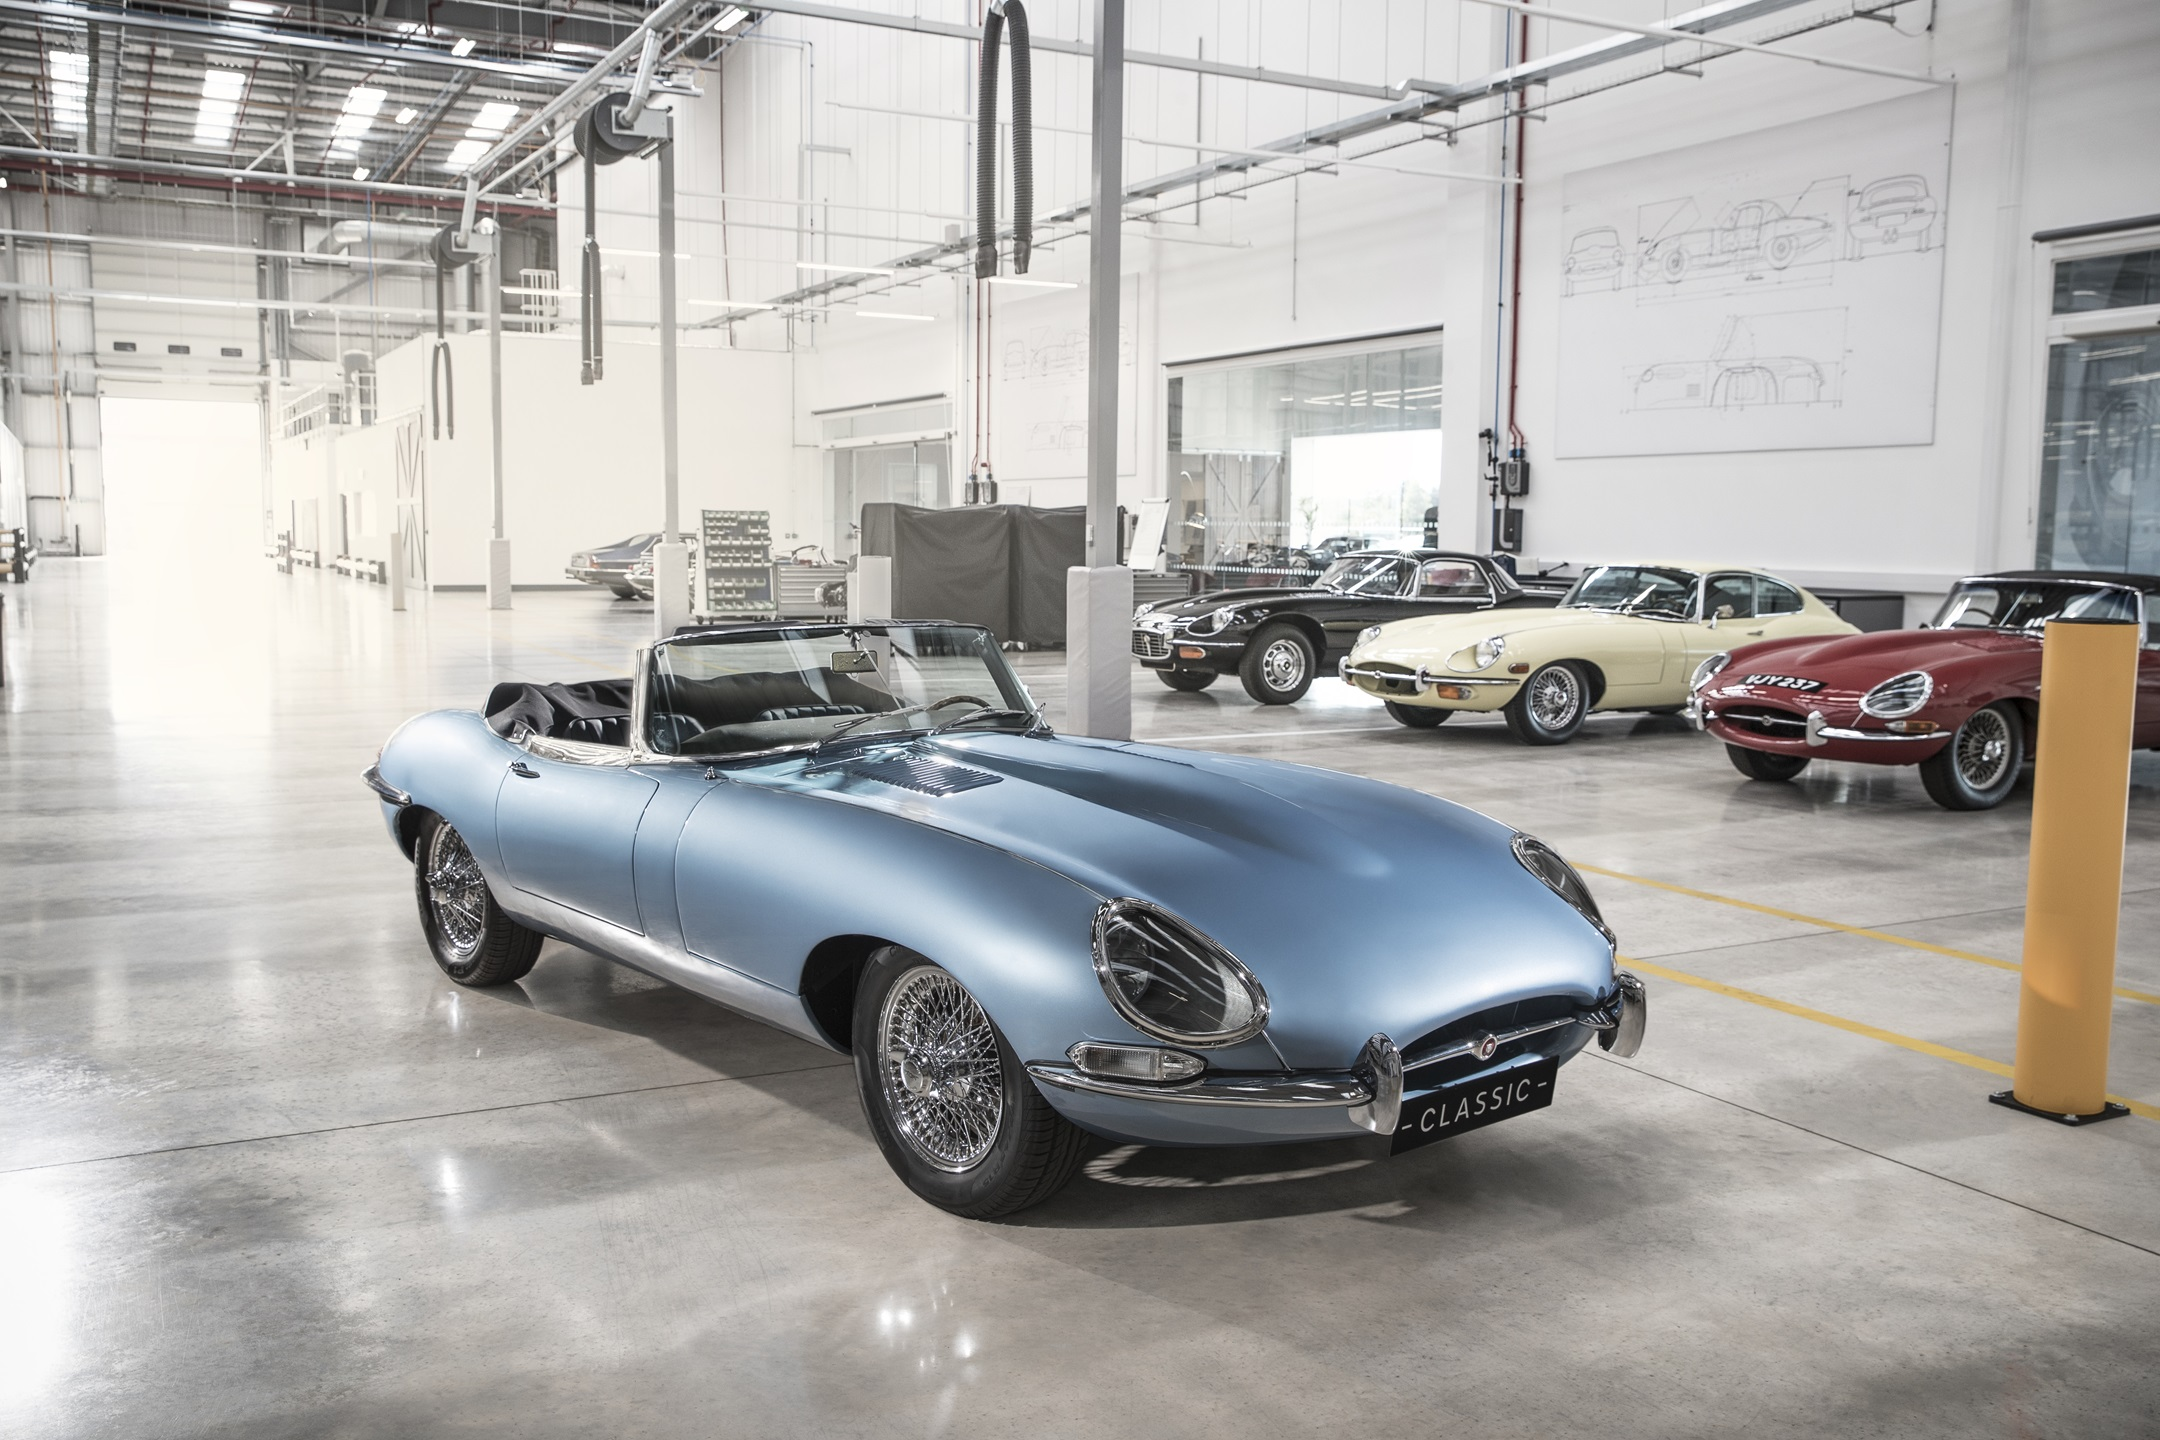 Blue Jaguar E-Type Zero in garage.